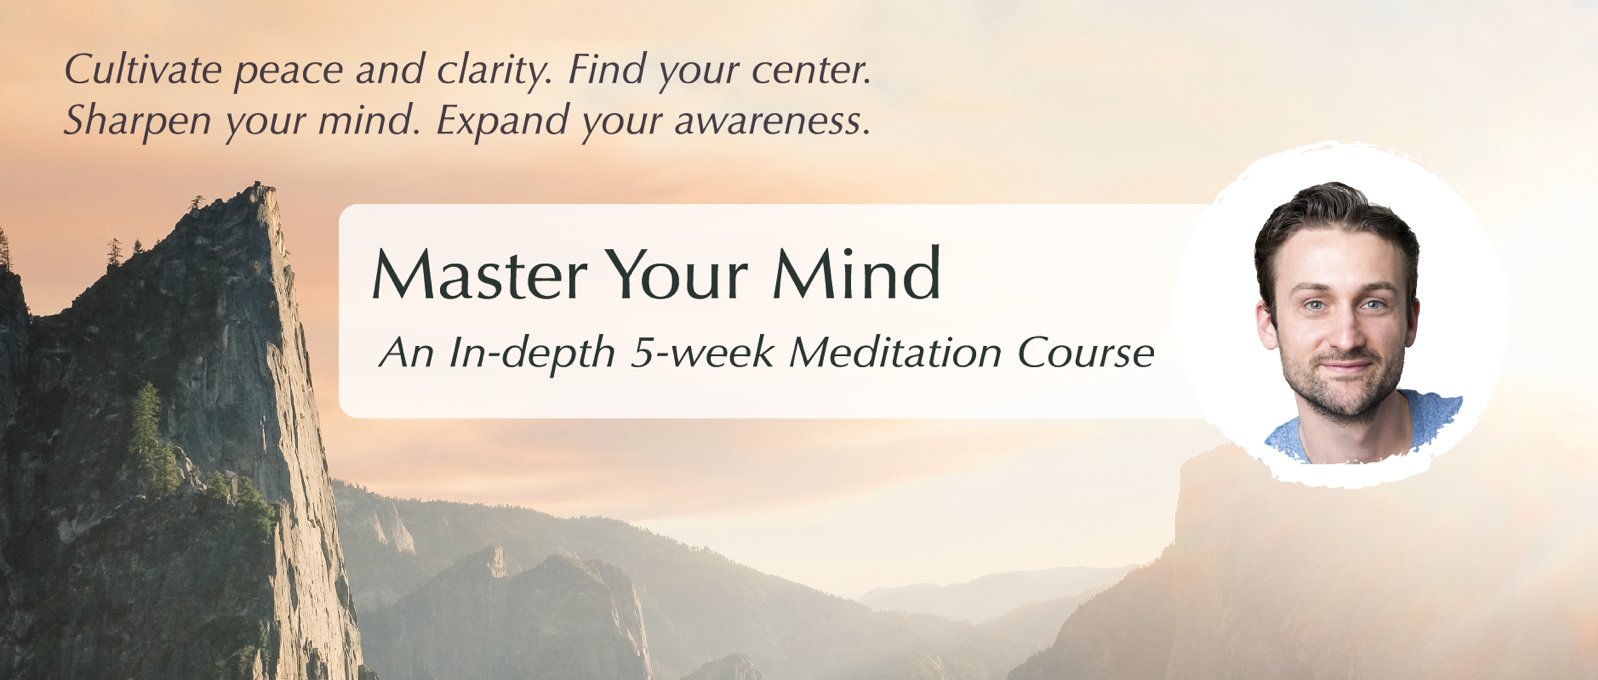 Master Your Mind Meditation